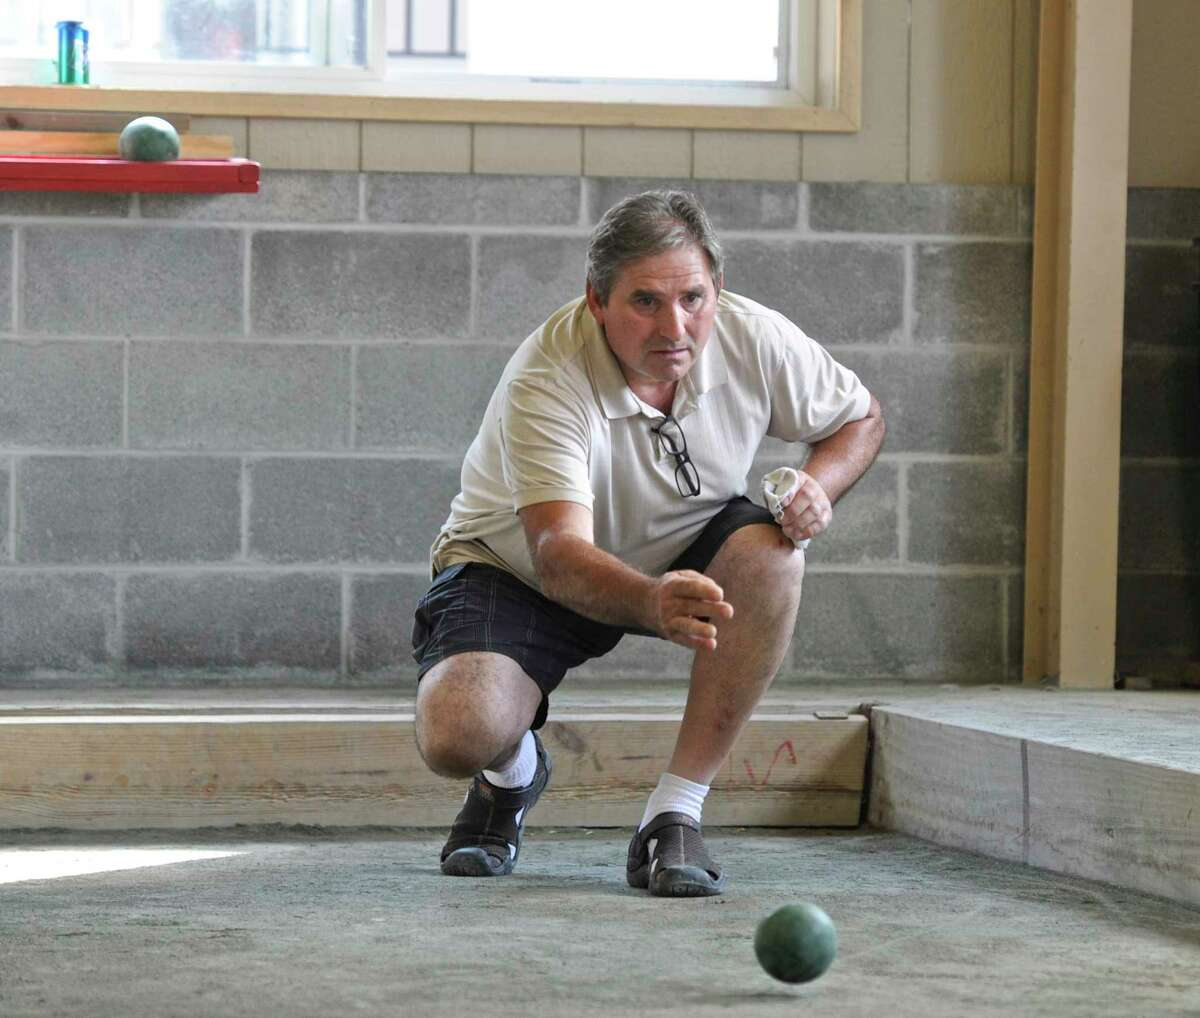 Pat Martoni, of East haven, rolls a ball during the bocci tournament at the annual Italian Festival at the Amerigo Vespucci Lodge on Christopher Columbus Avenue on Saturday, August 5, 2017, in Danbury, Conn. The festival continues on Sunday from 1 to 9 p.m.